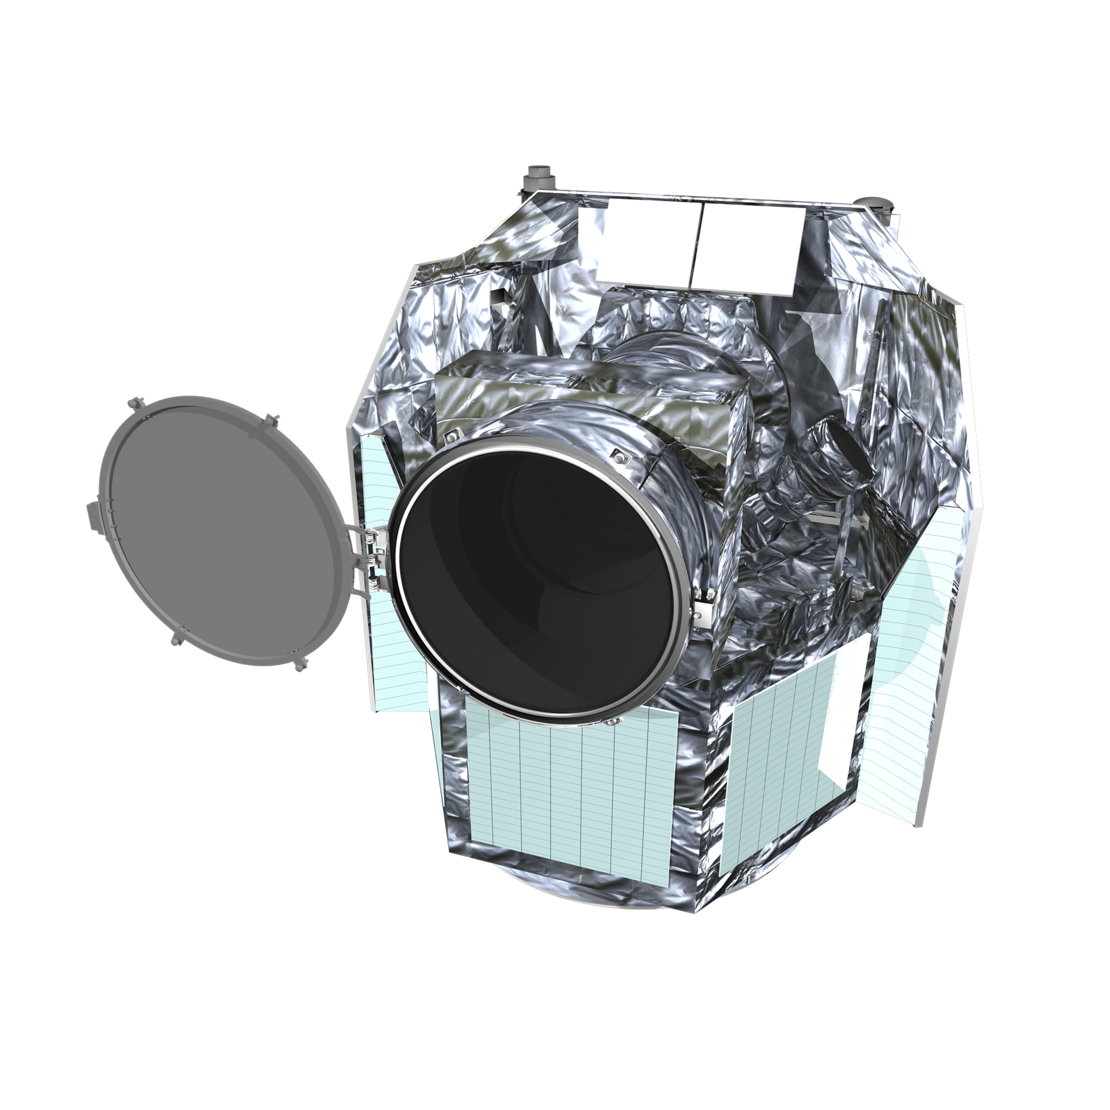 Cheops satellite